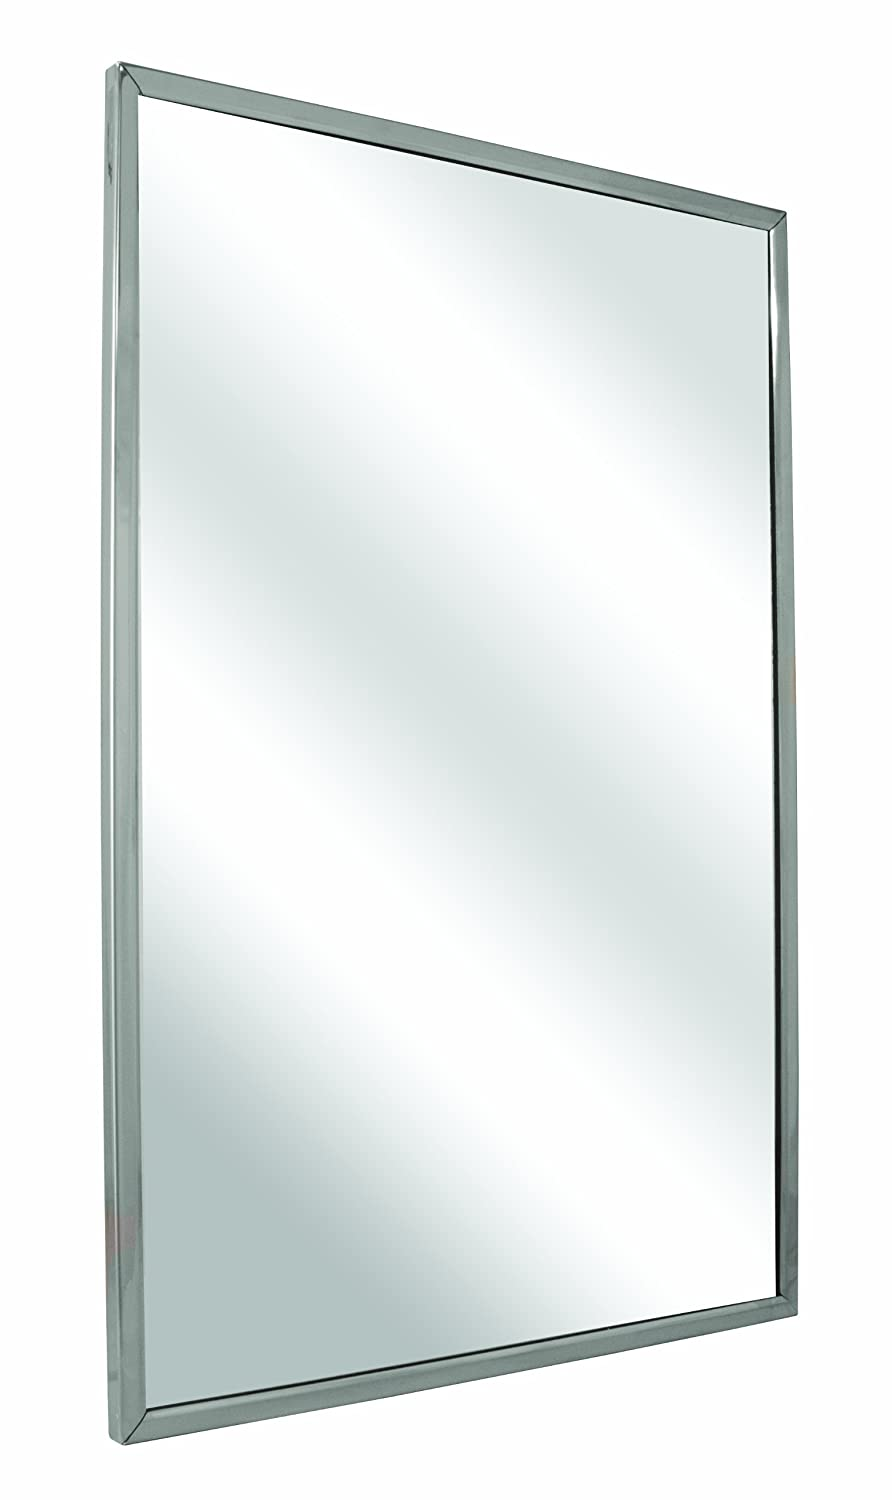 Bradley 780 024360 Float Glass Angle Frame Mirror With Welded